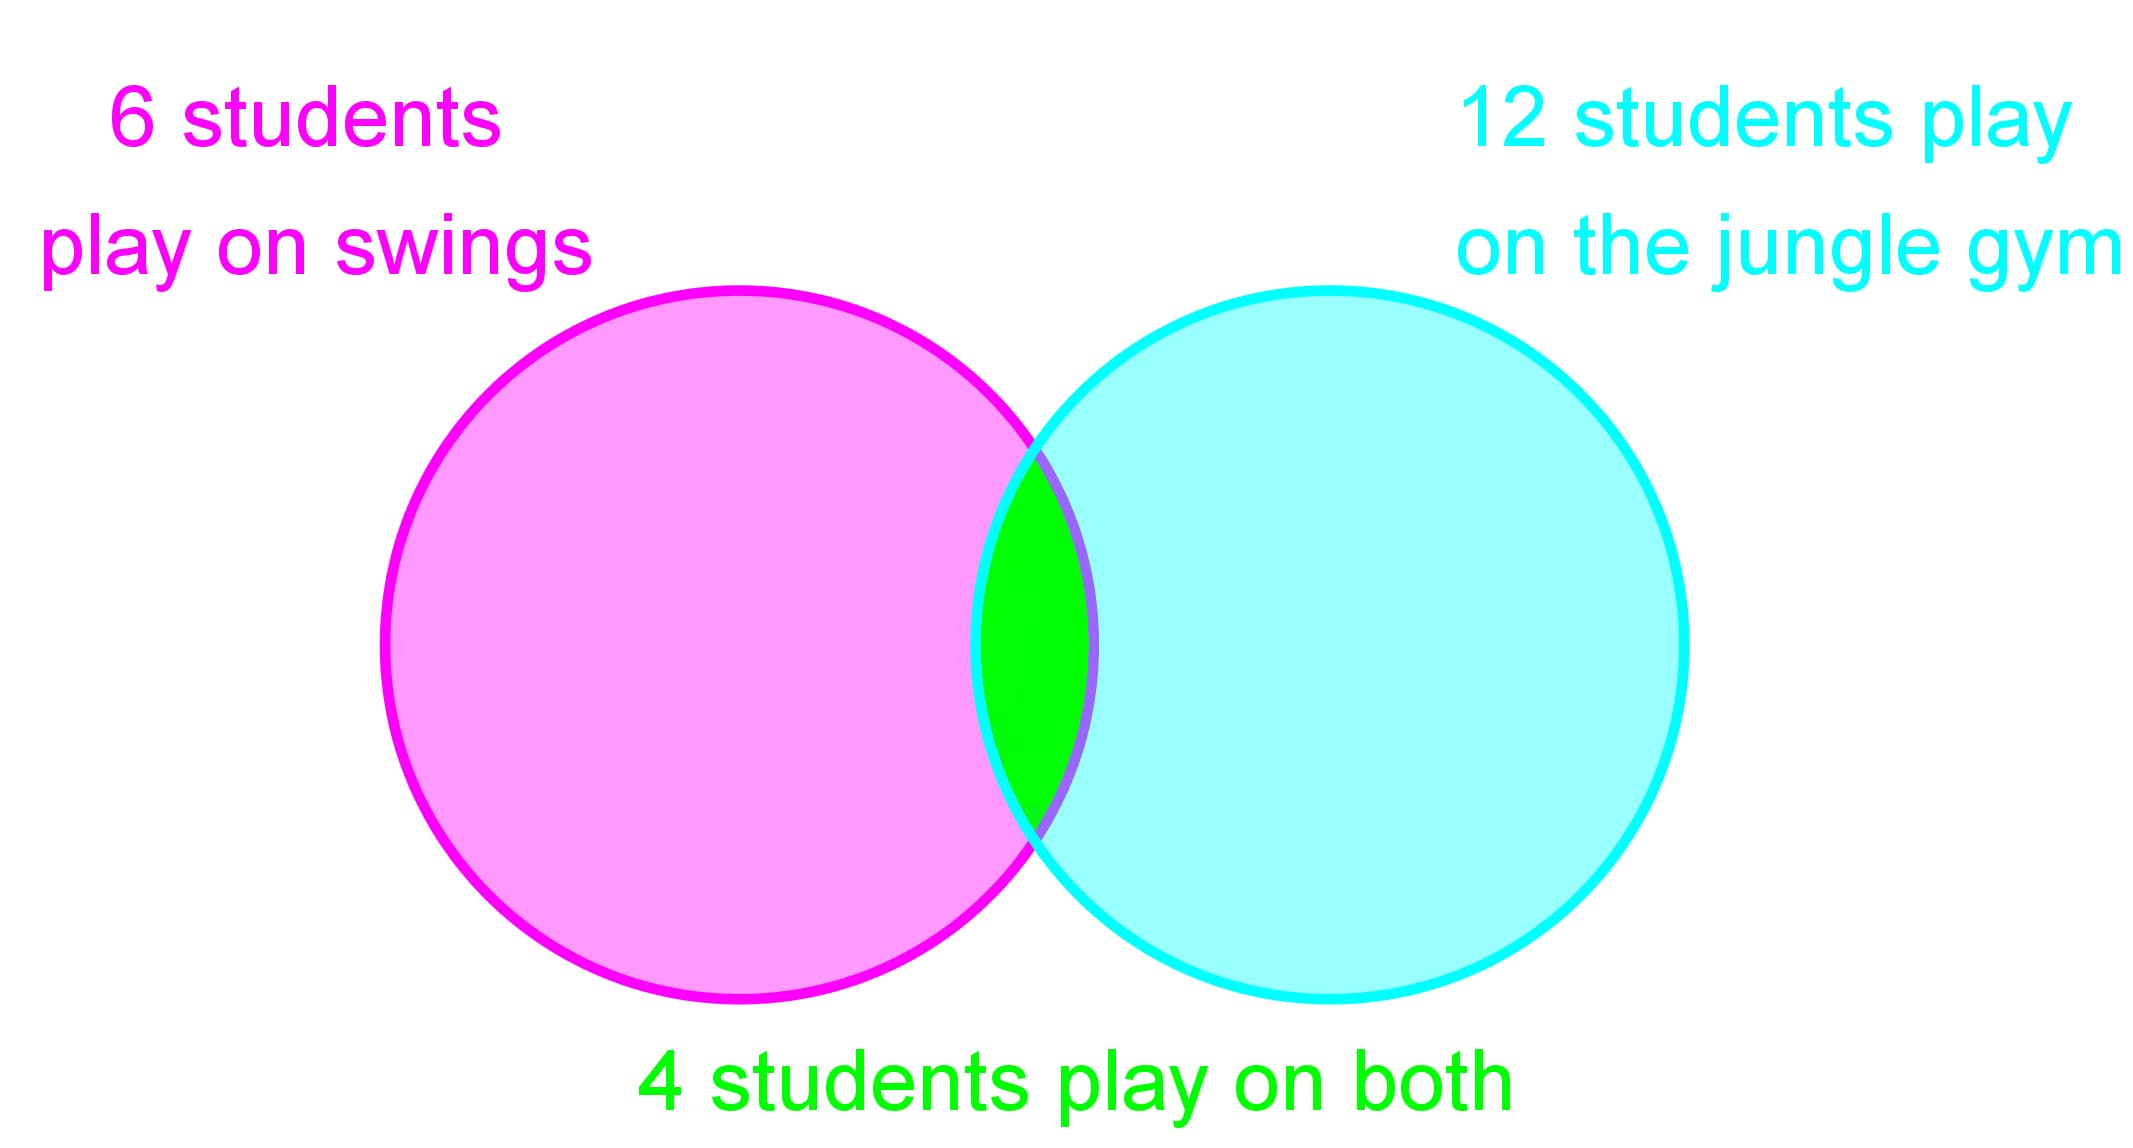 Reading and drawing Venn diagrams